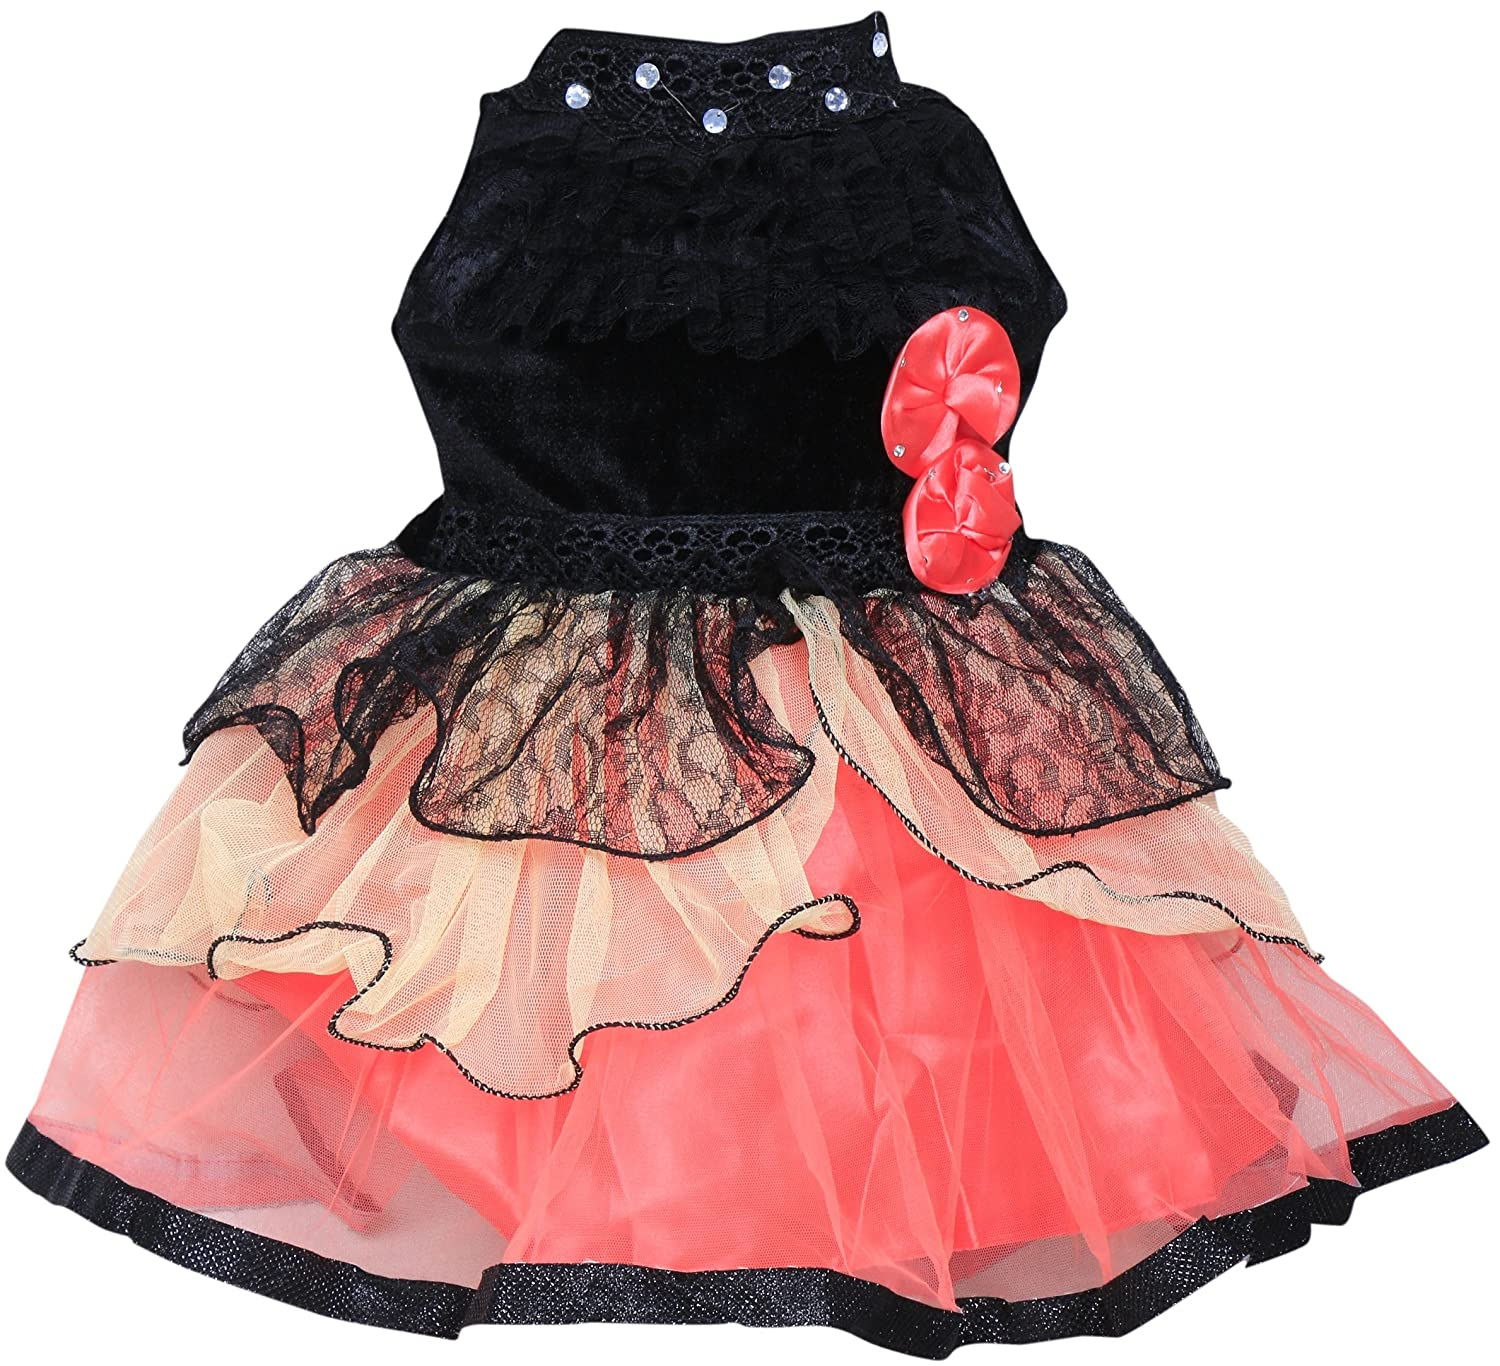 Mpc Cute Fashion Baby Girl s Velvet and Net Dresses for 6 7 Years